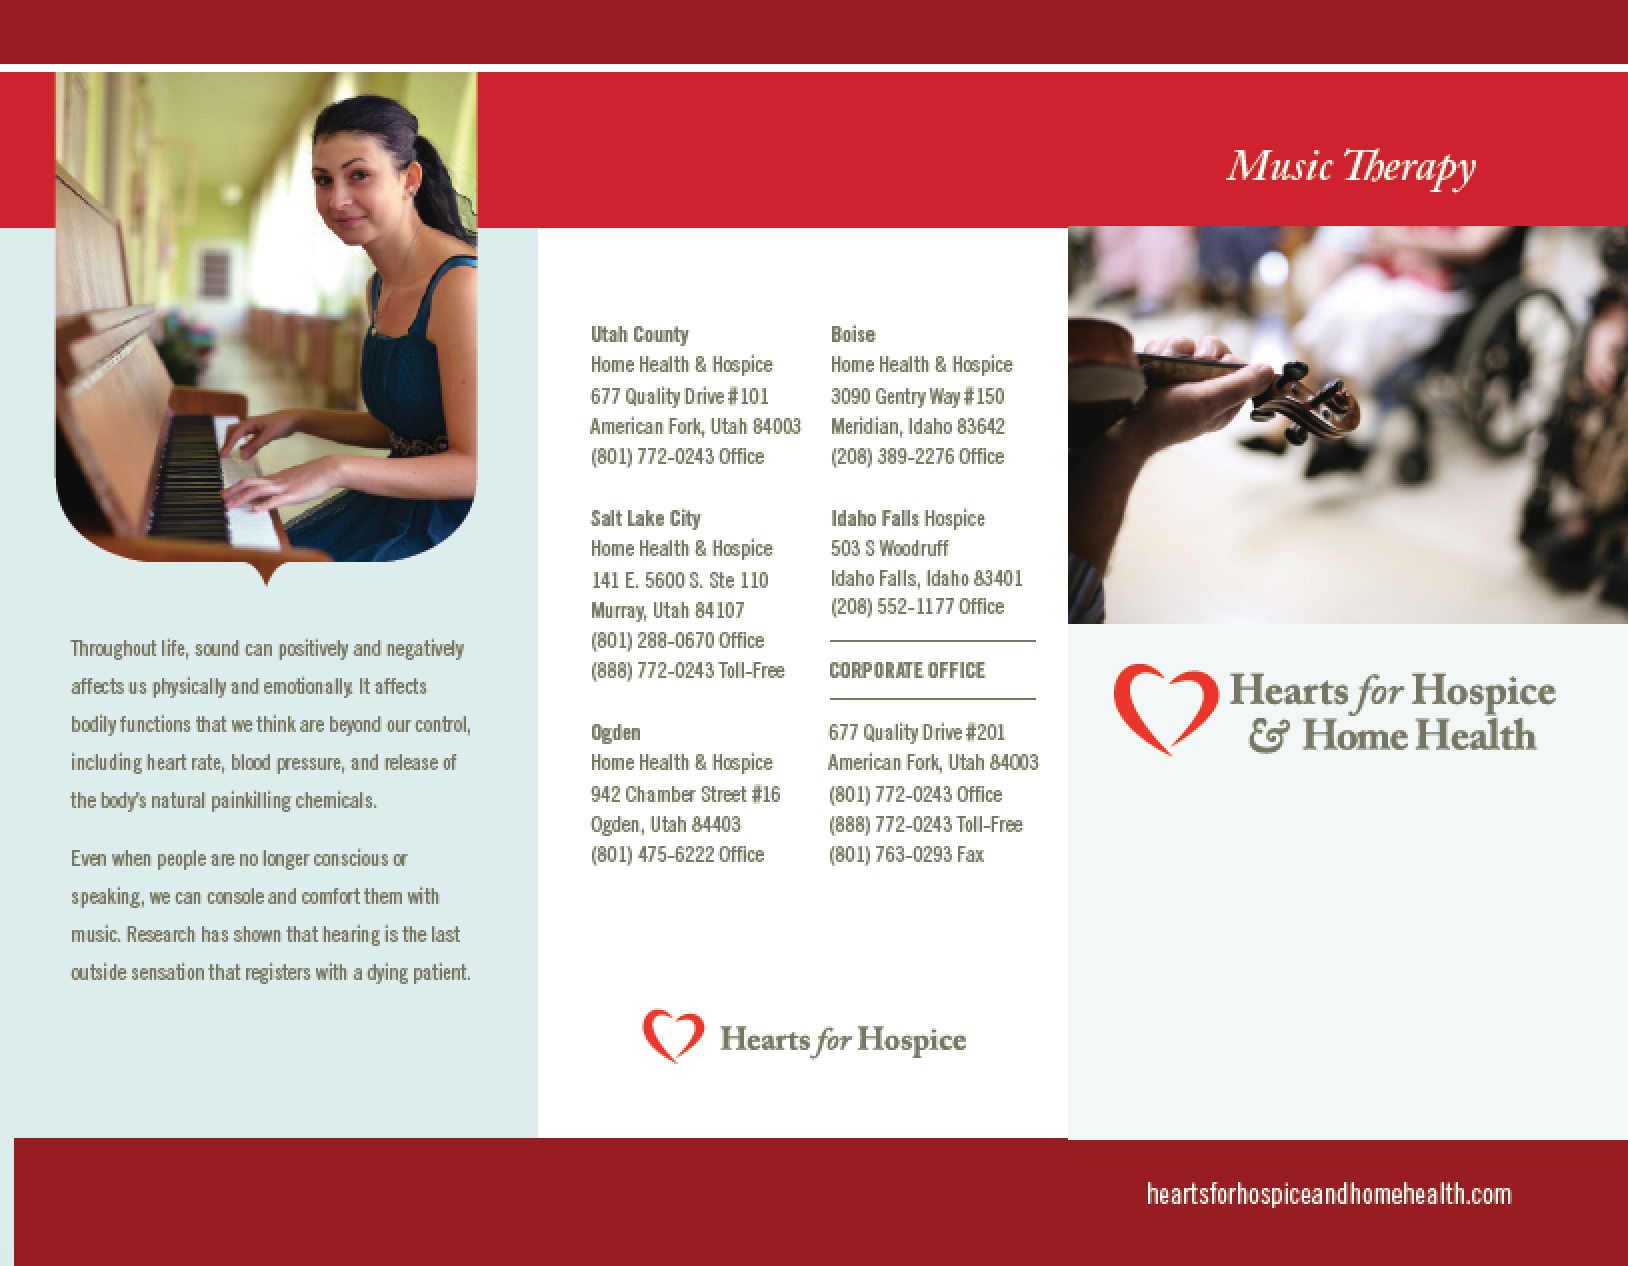 Why Music Therapy in Hospice? - Hearts for Hospice and Home